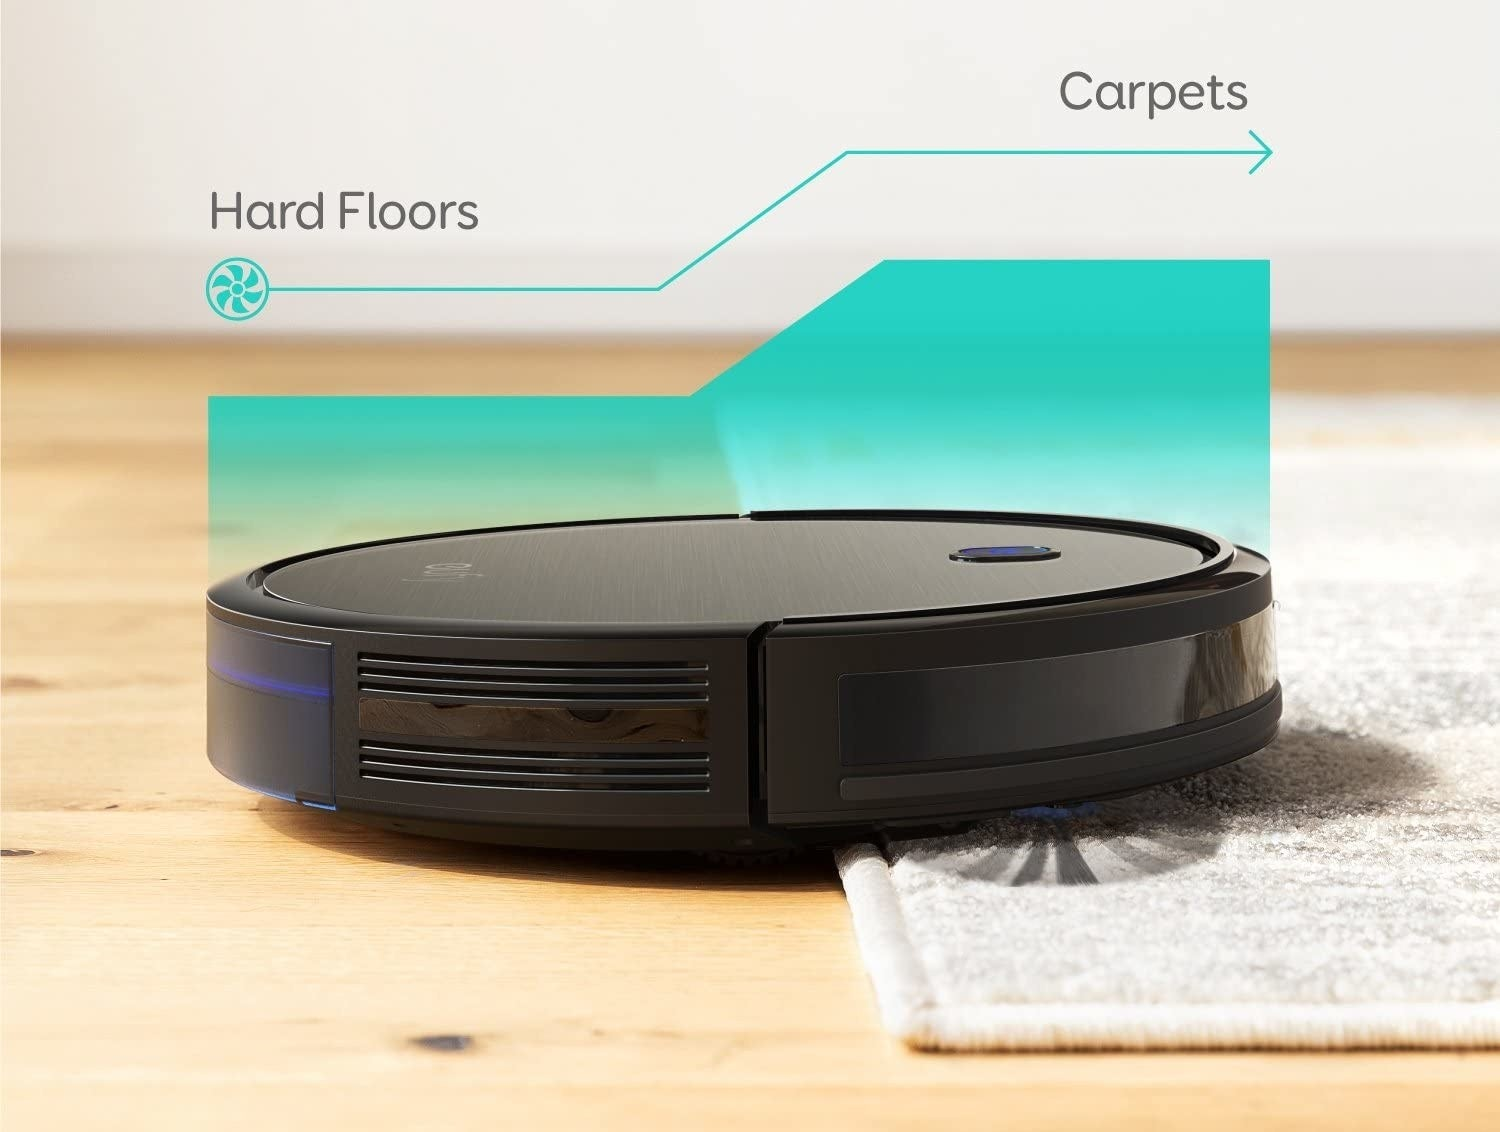 a robot vacuum moving from a hard floor to a carpet